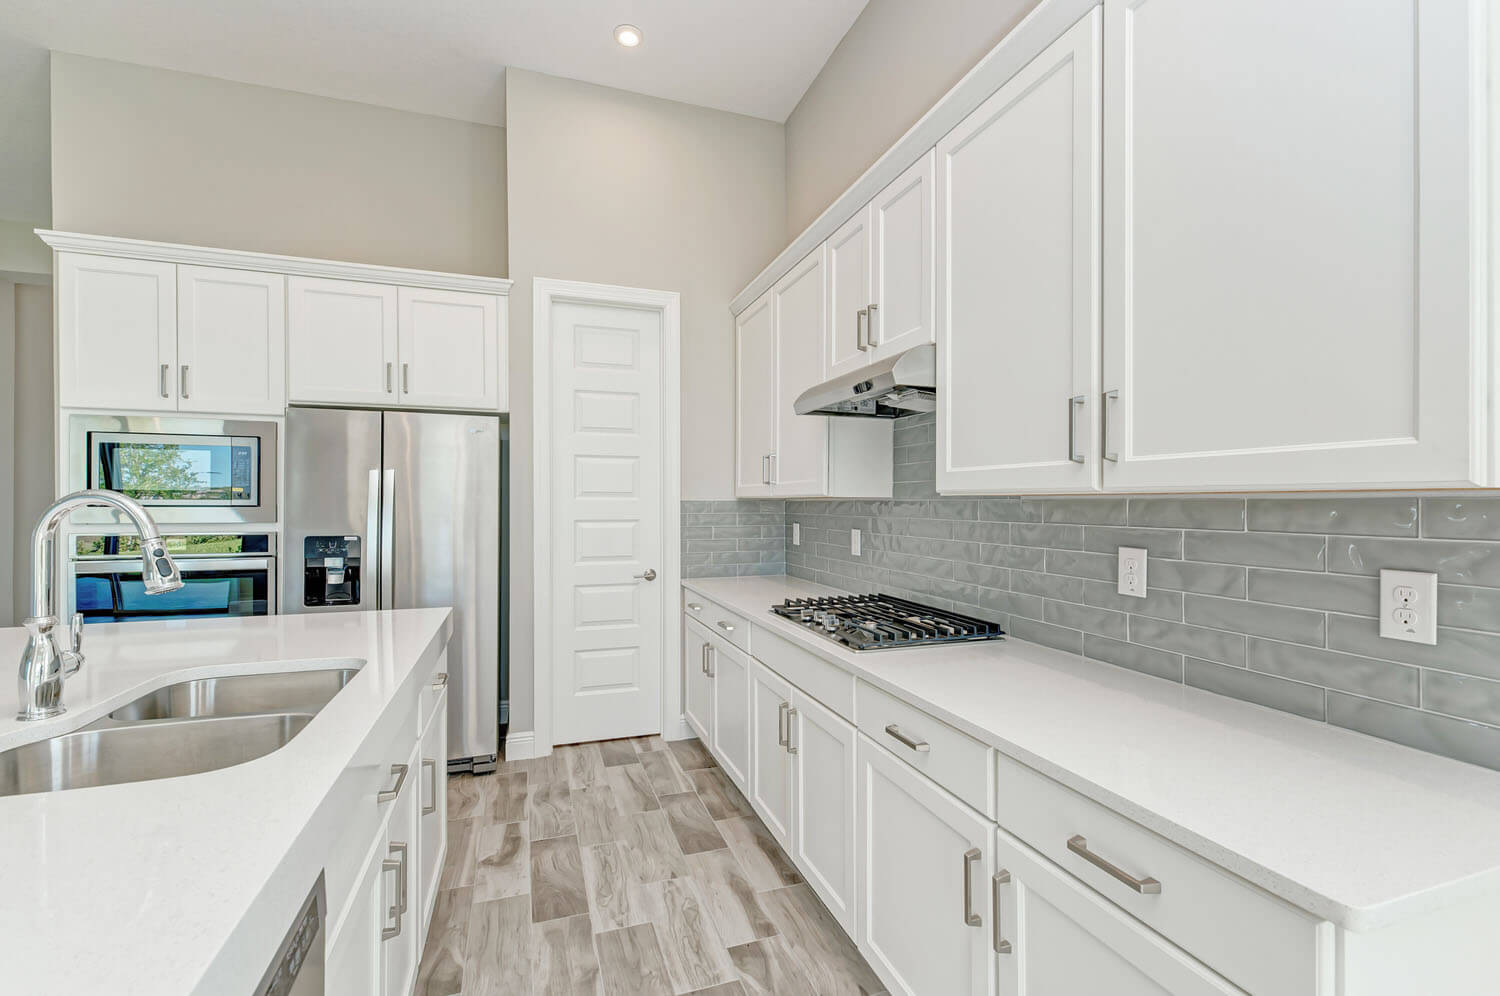 New Tampa Single Family Home Quick Possession Barrett in Worthington, located at 4621 Antrim Drive Built By Cardel Homes Tampa